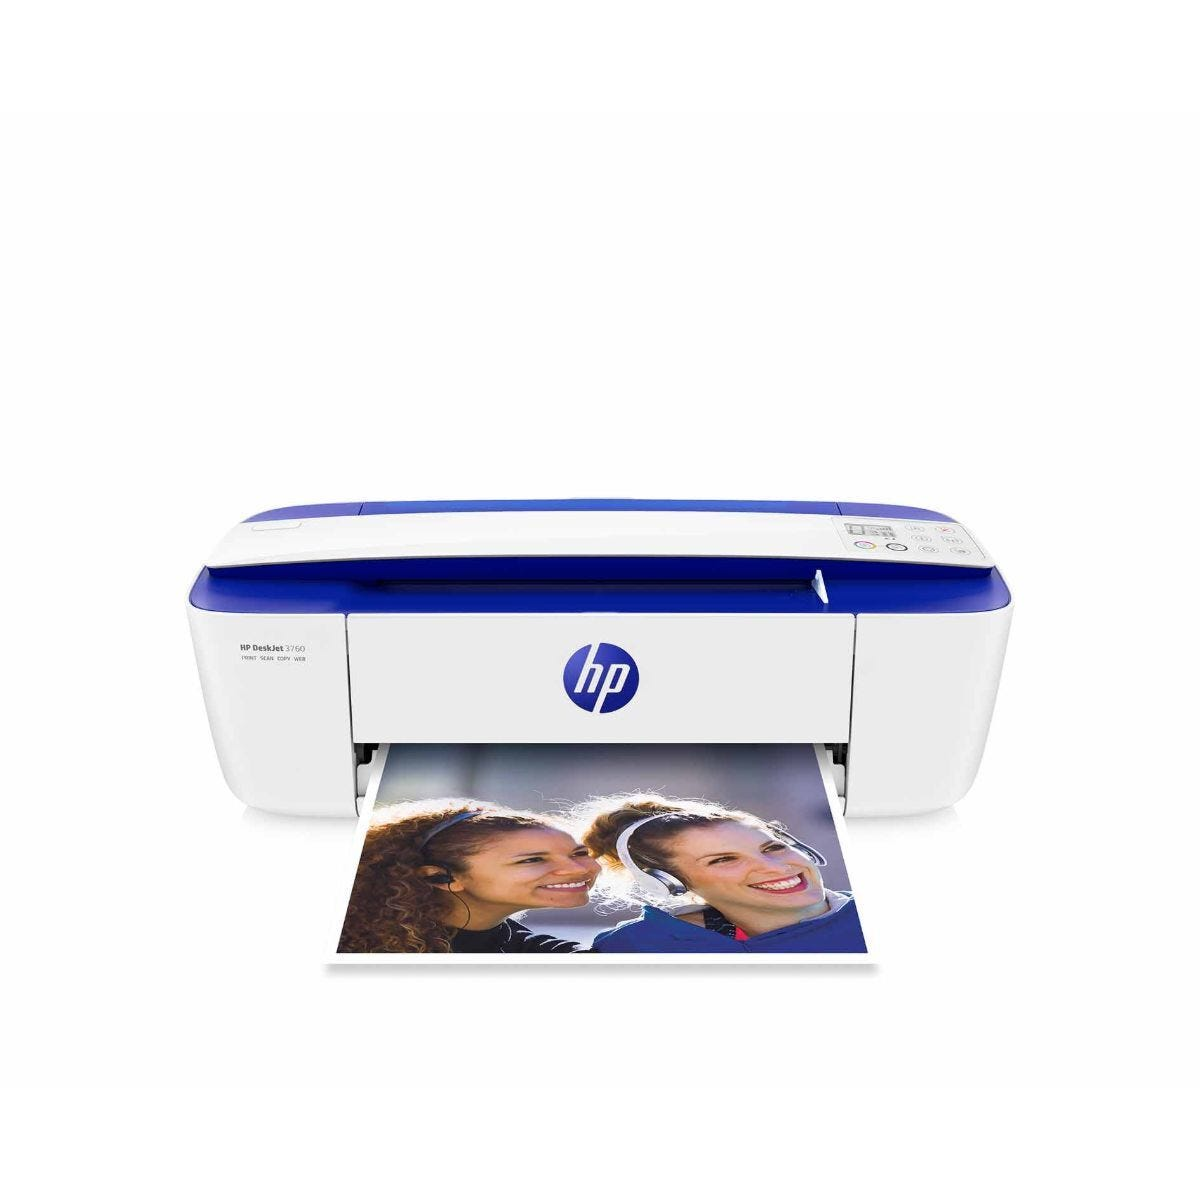 HP Deskjet 3760 Wireless All in One Inkjet Printer with Free 2 Month Instant Ink Trial